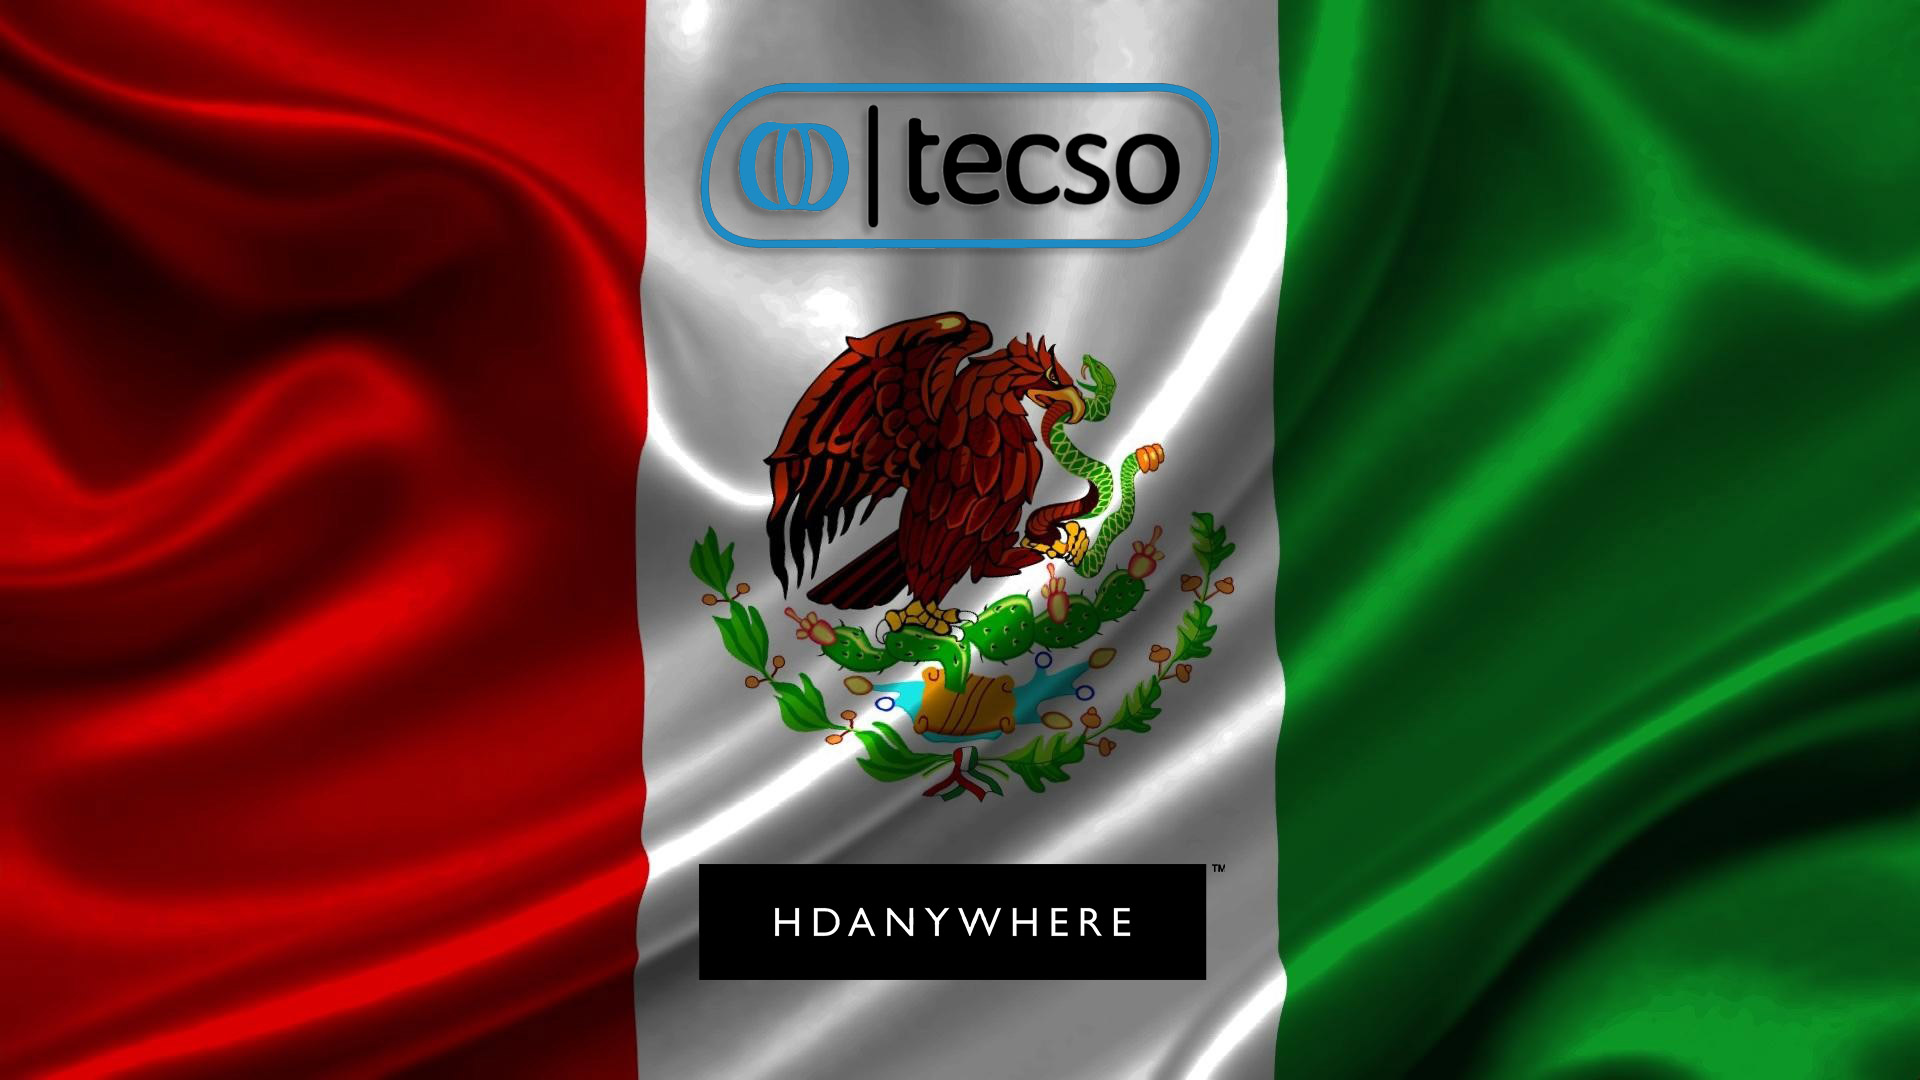 HDANYWHERE Launches in Mexico with TECSO